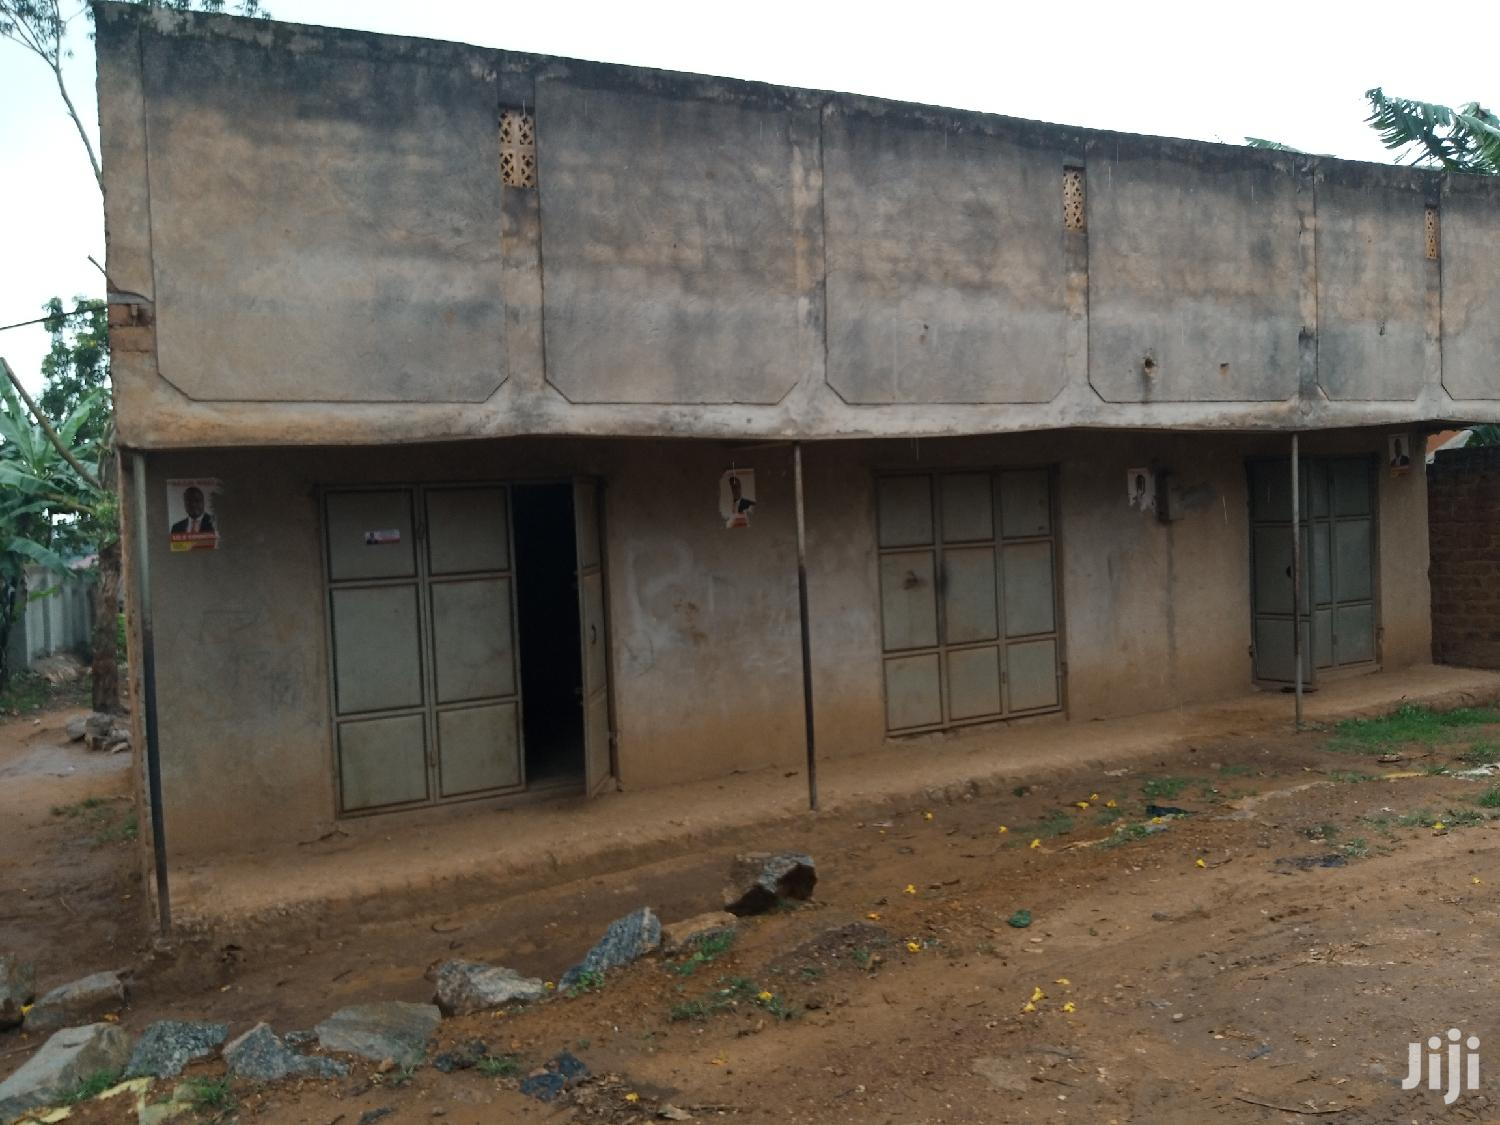 Commercial Houses For Sale.For Kats And Deo Surveys LTD